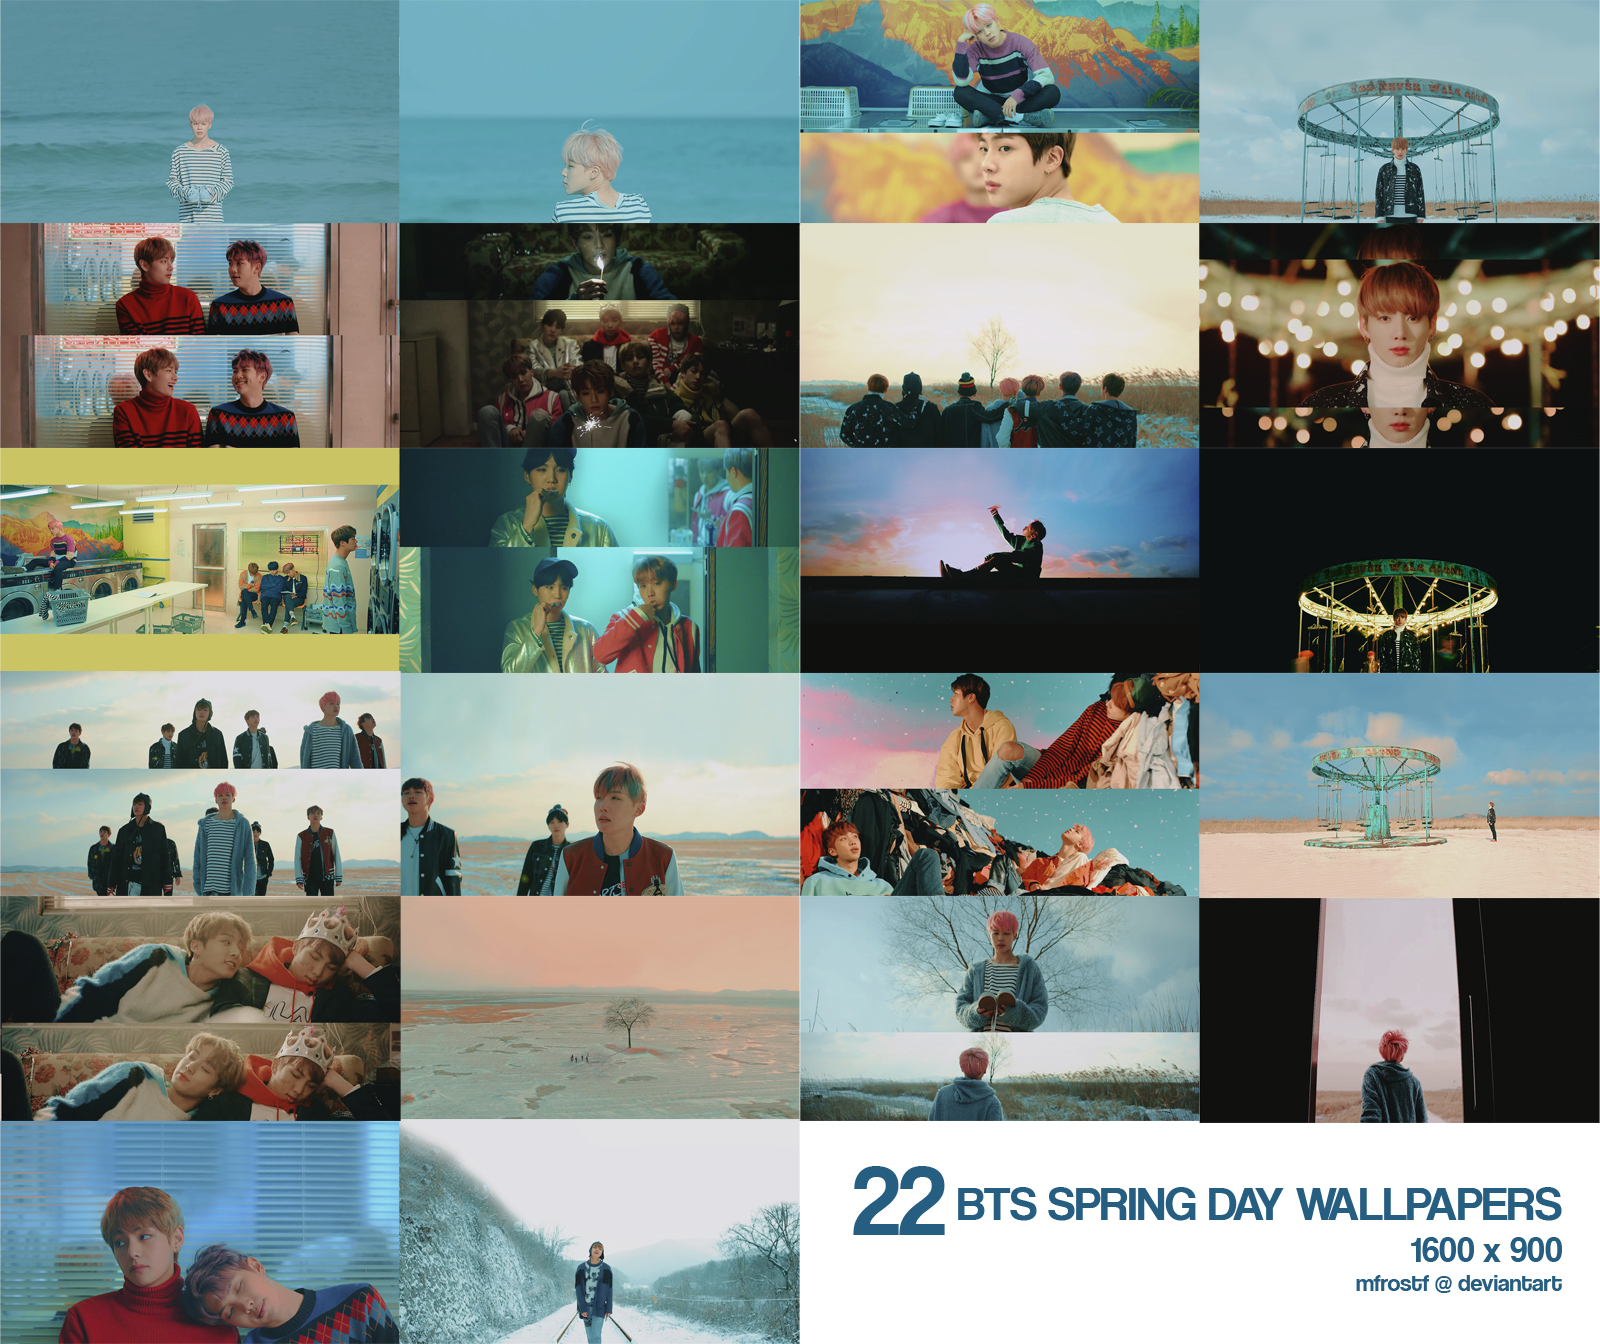 BTS   Spring Day Desktop Wallpapers by mfrostf 1600x1344